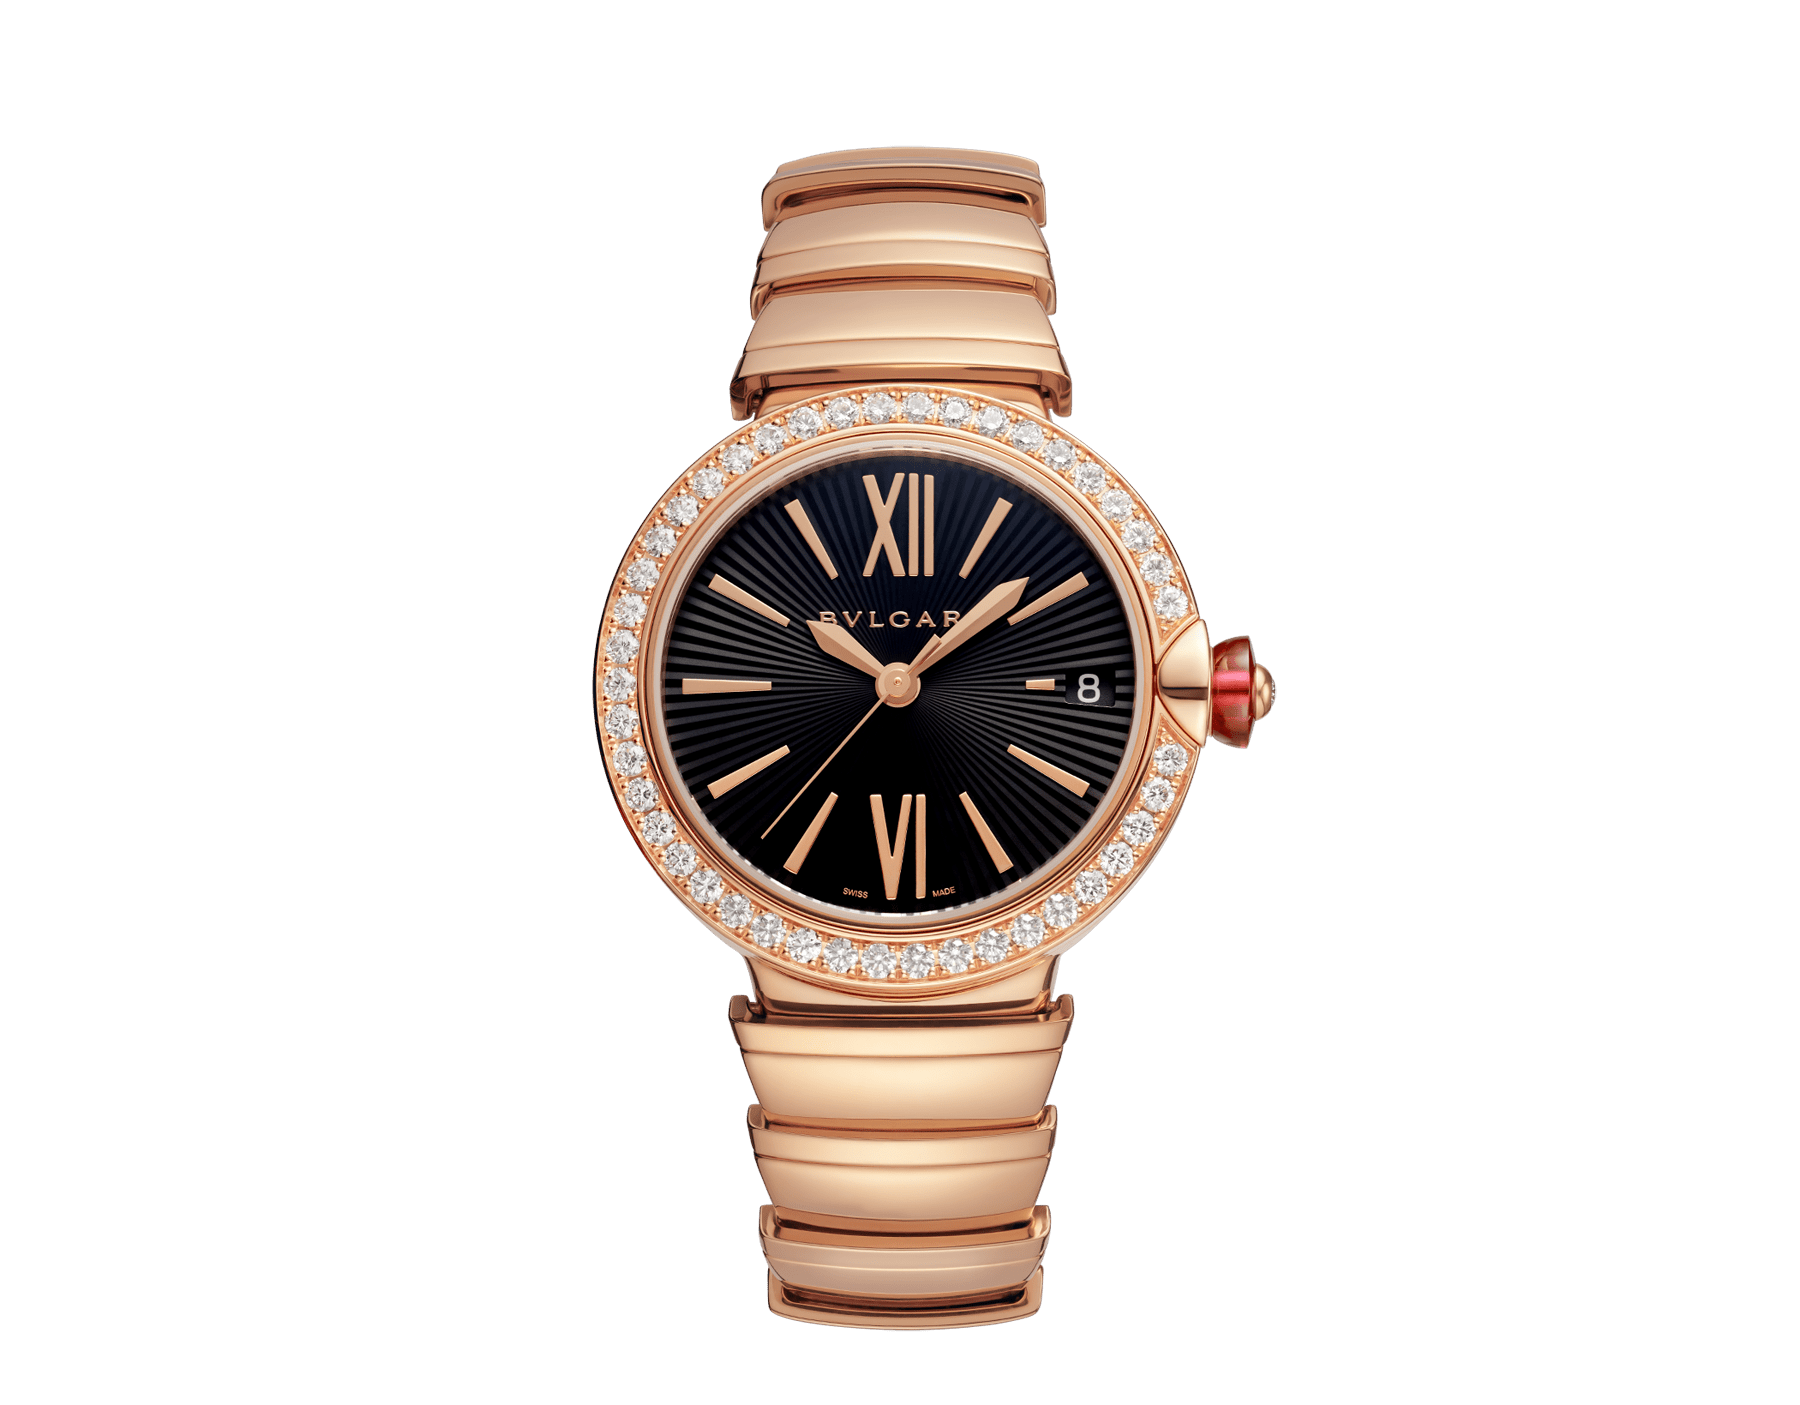 LVCEA watch with 18 kt rose gold and brilliant-cut diamond case, black opaline dial and 18 kt rose gold bracelet. 102260 image 1